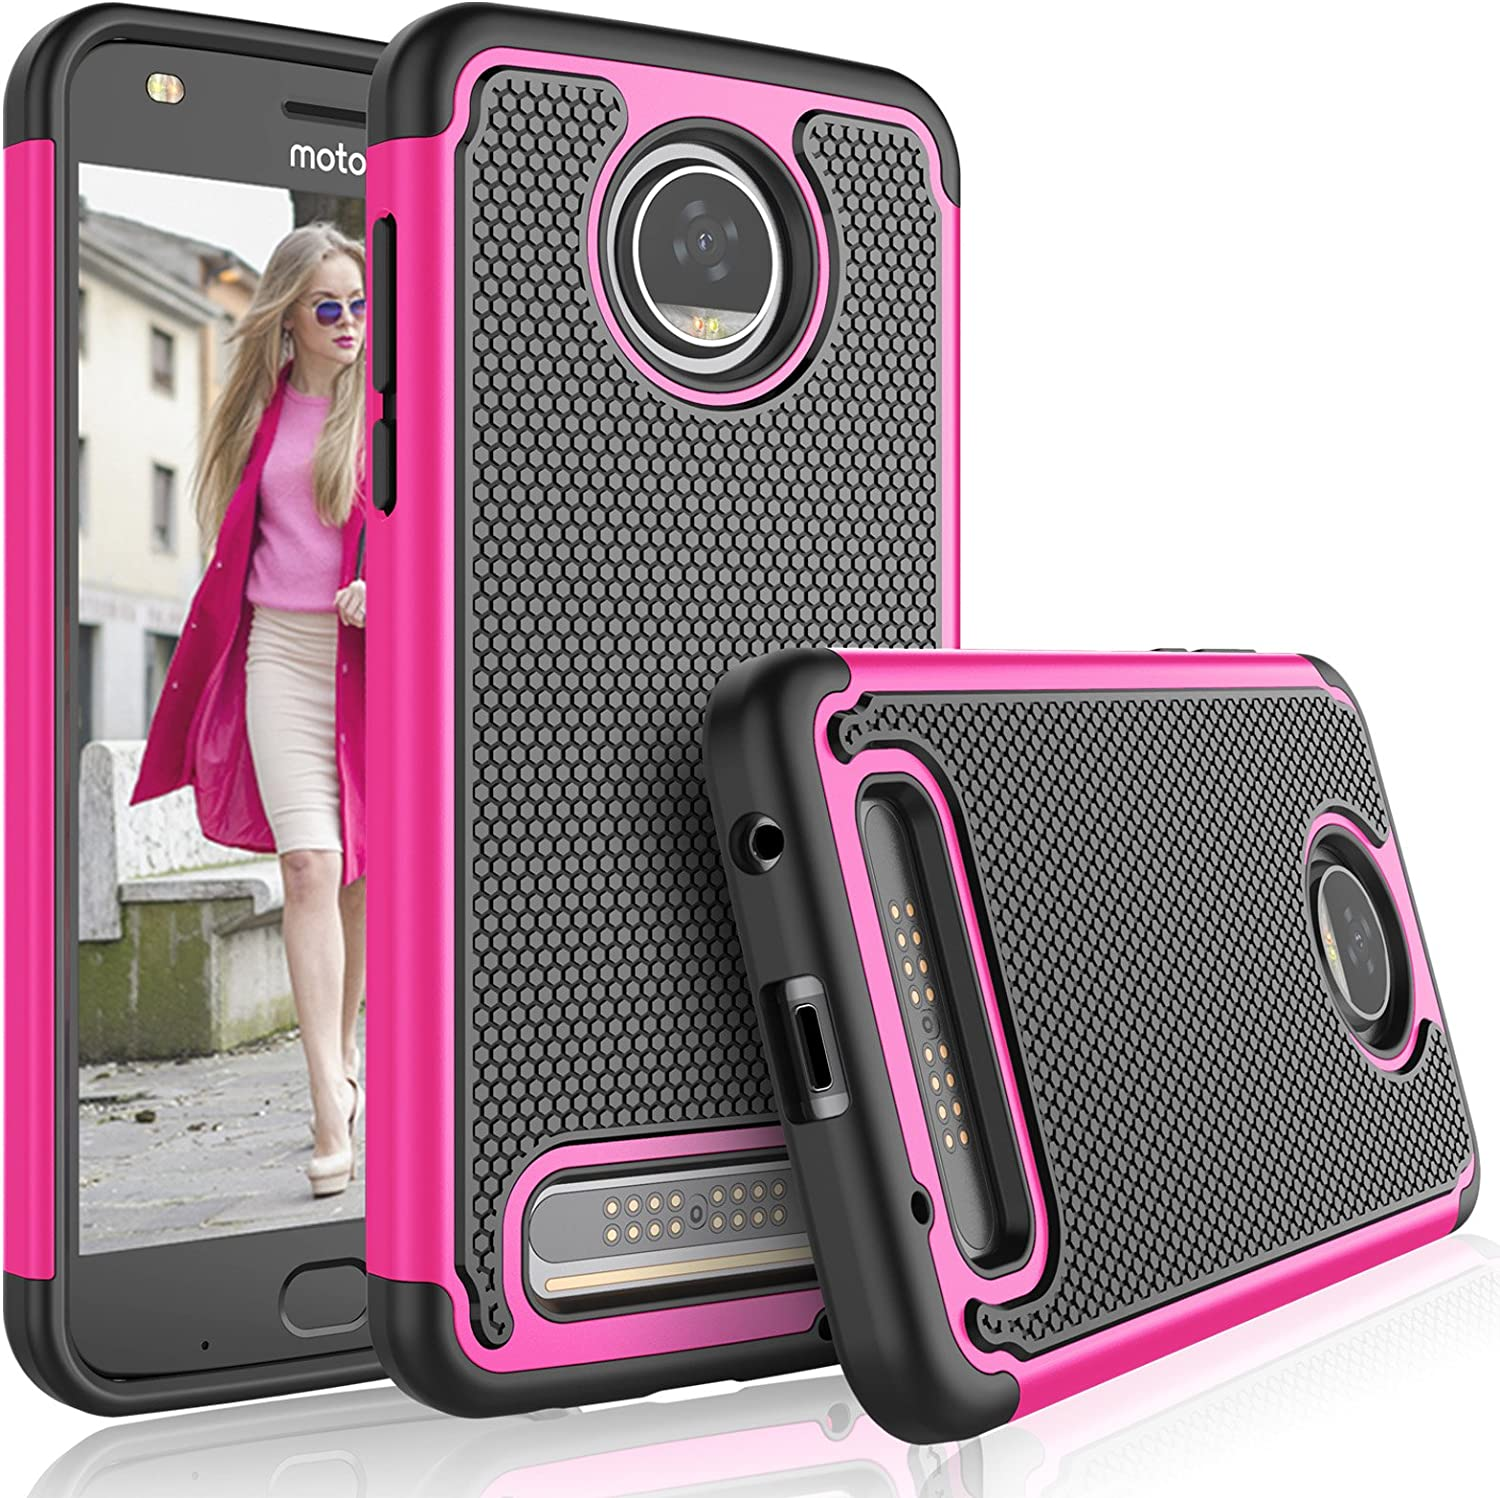 Tekcoo Moto Z2 Play Case, Tekcoo Motorola Z2 Play Droid Case for Girls, [Tmajor] Shock Absorbing [Rose] Rubber Silicone & Plastic Scratch Resistant Defender Bumper Hard Cases for Moto Z Play 2017